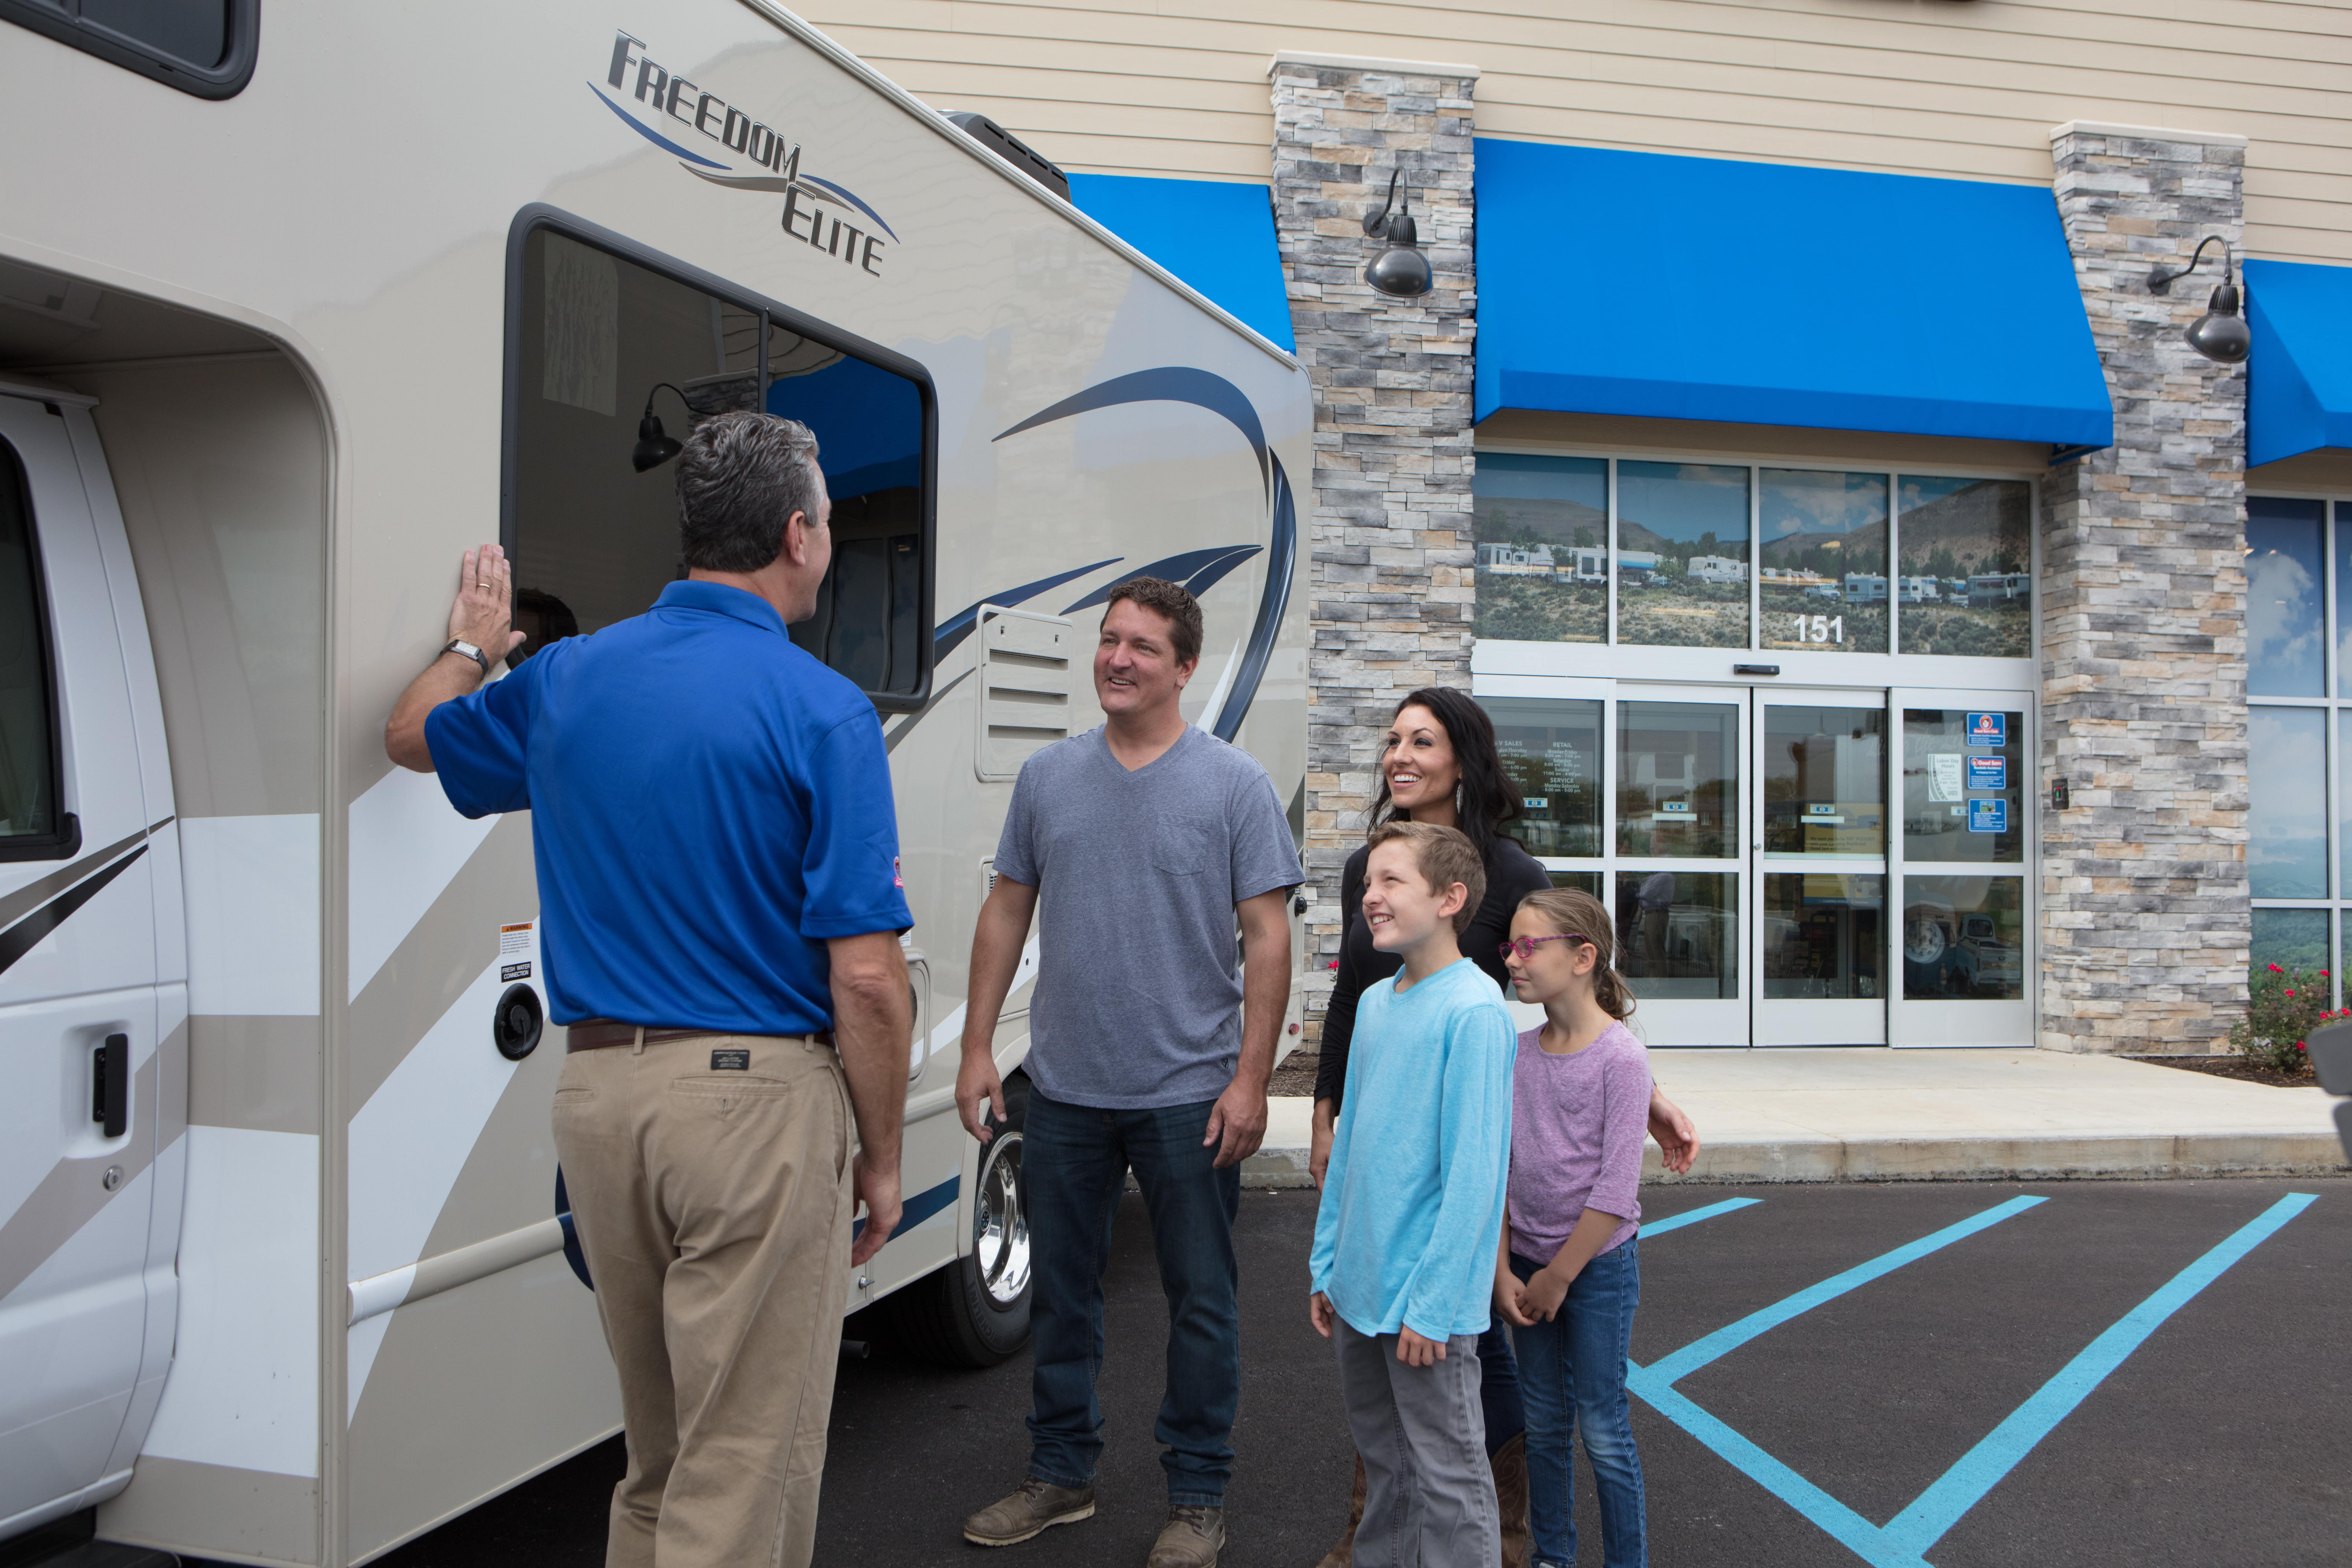 5 Of The Best Fifth Wheel Toy Haulers Camping World